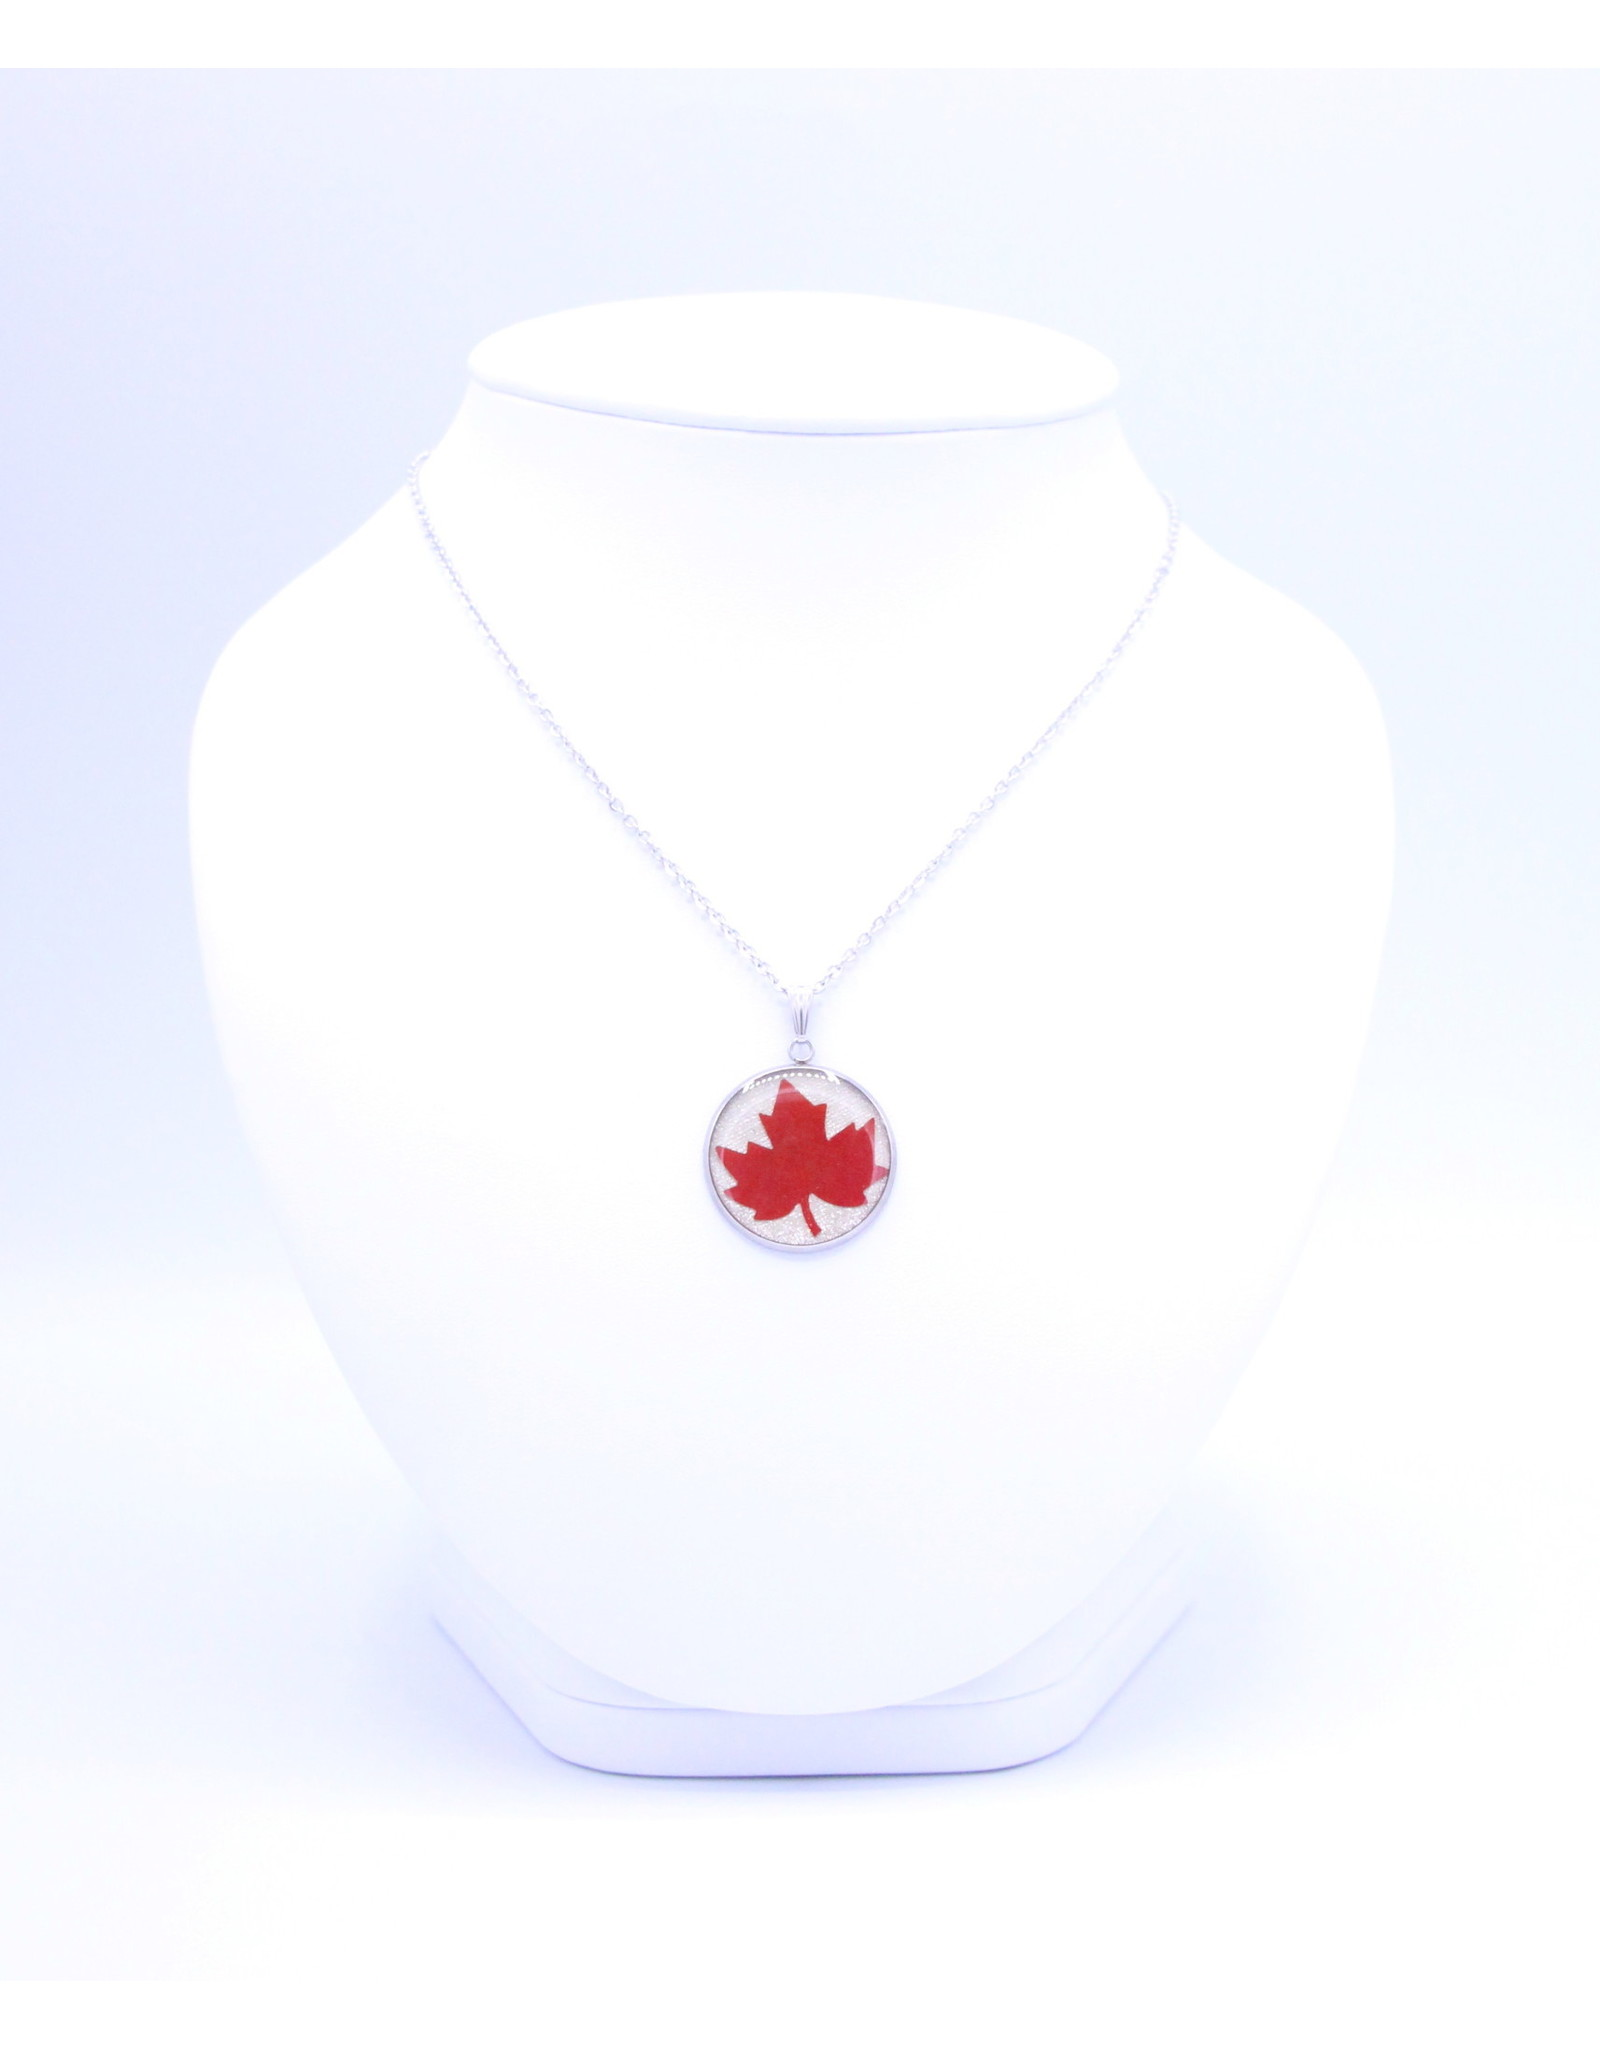 25mm Maple Leaf Necklace White - N25MLW3